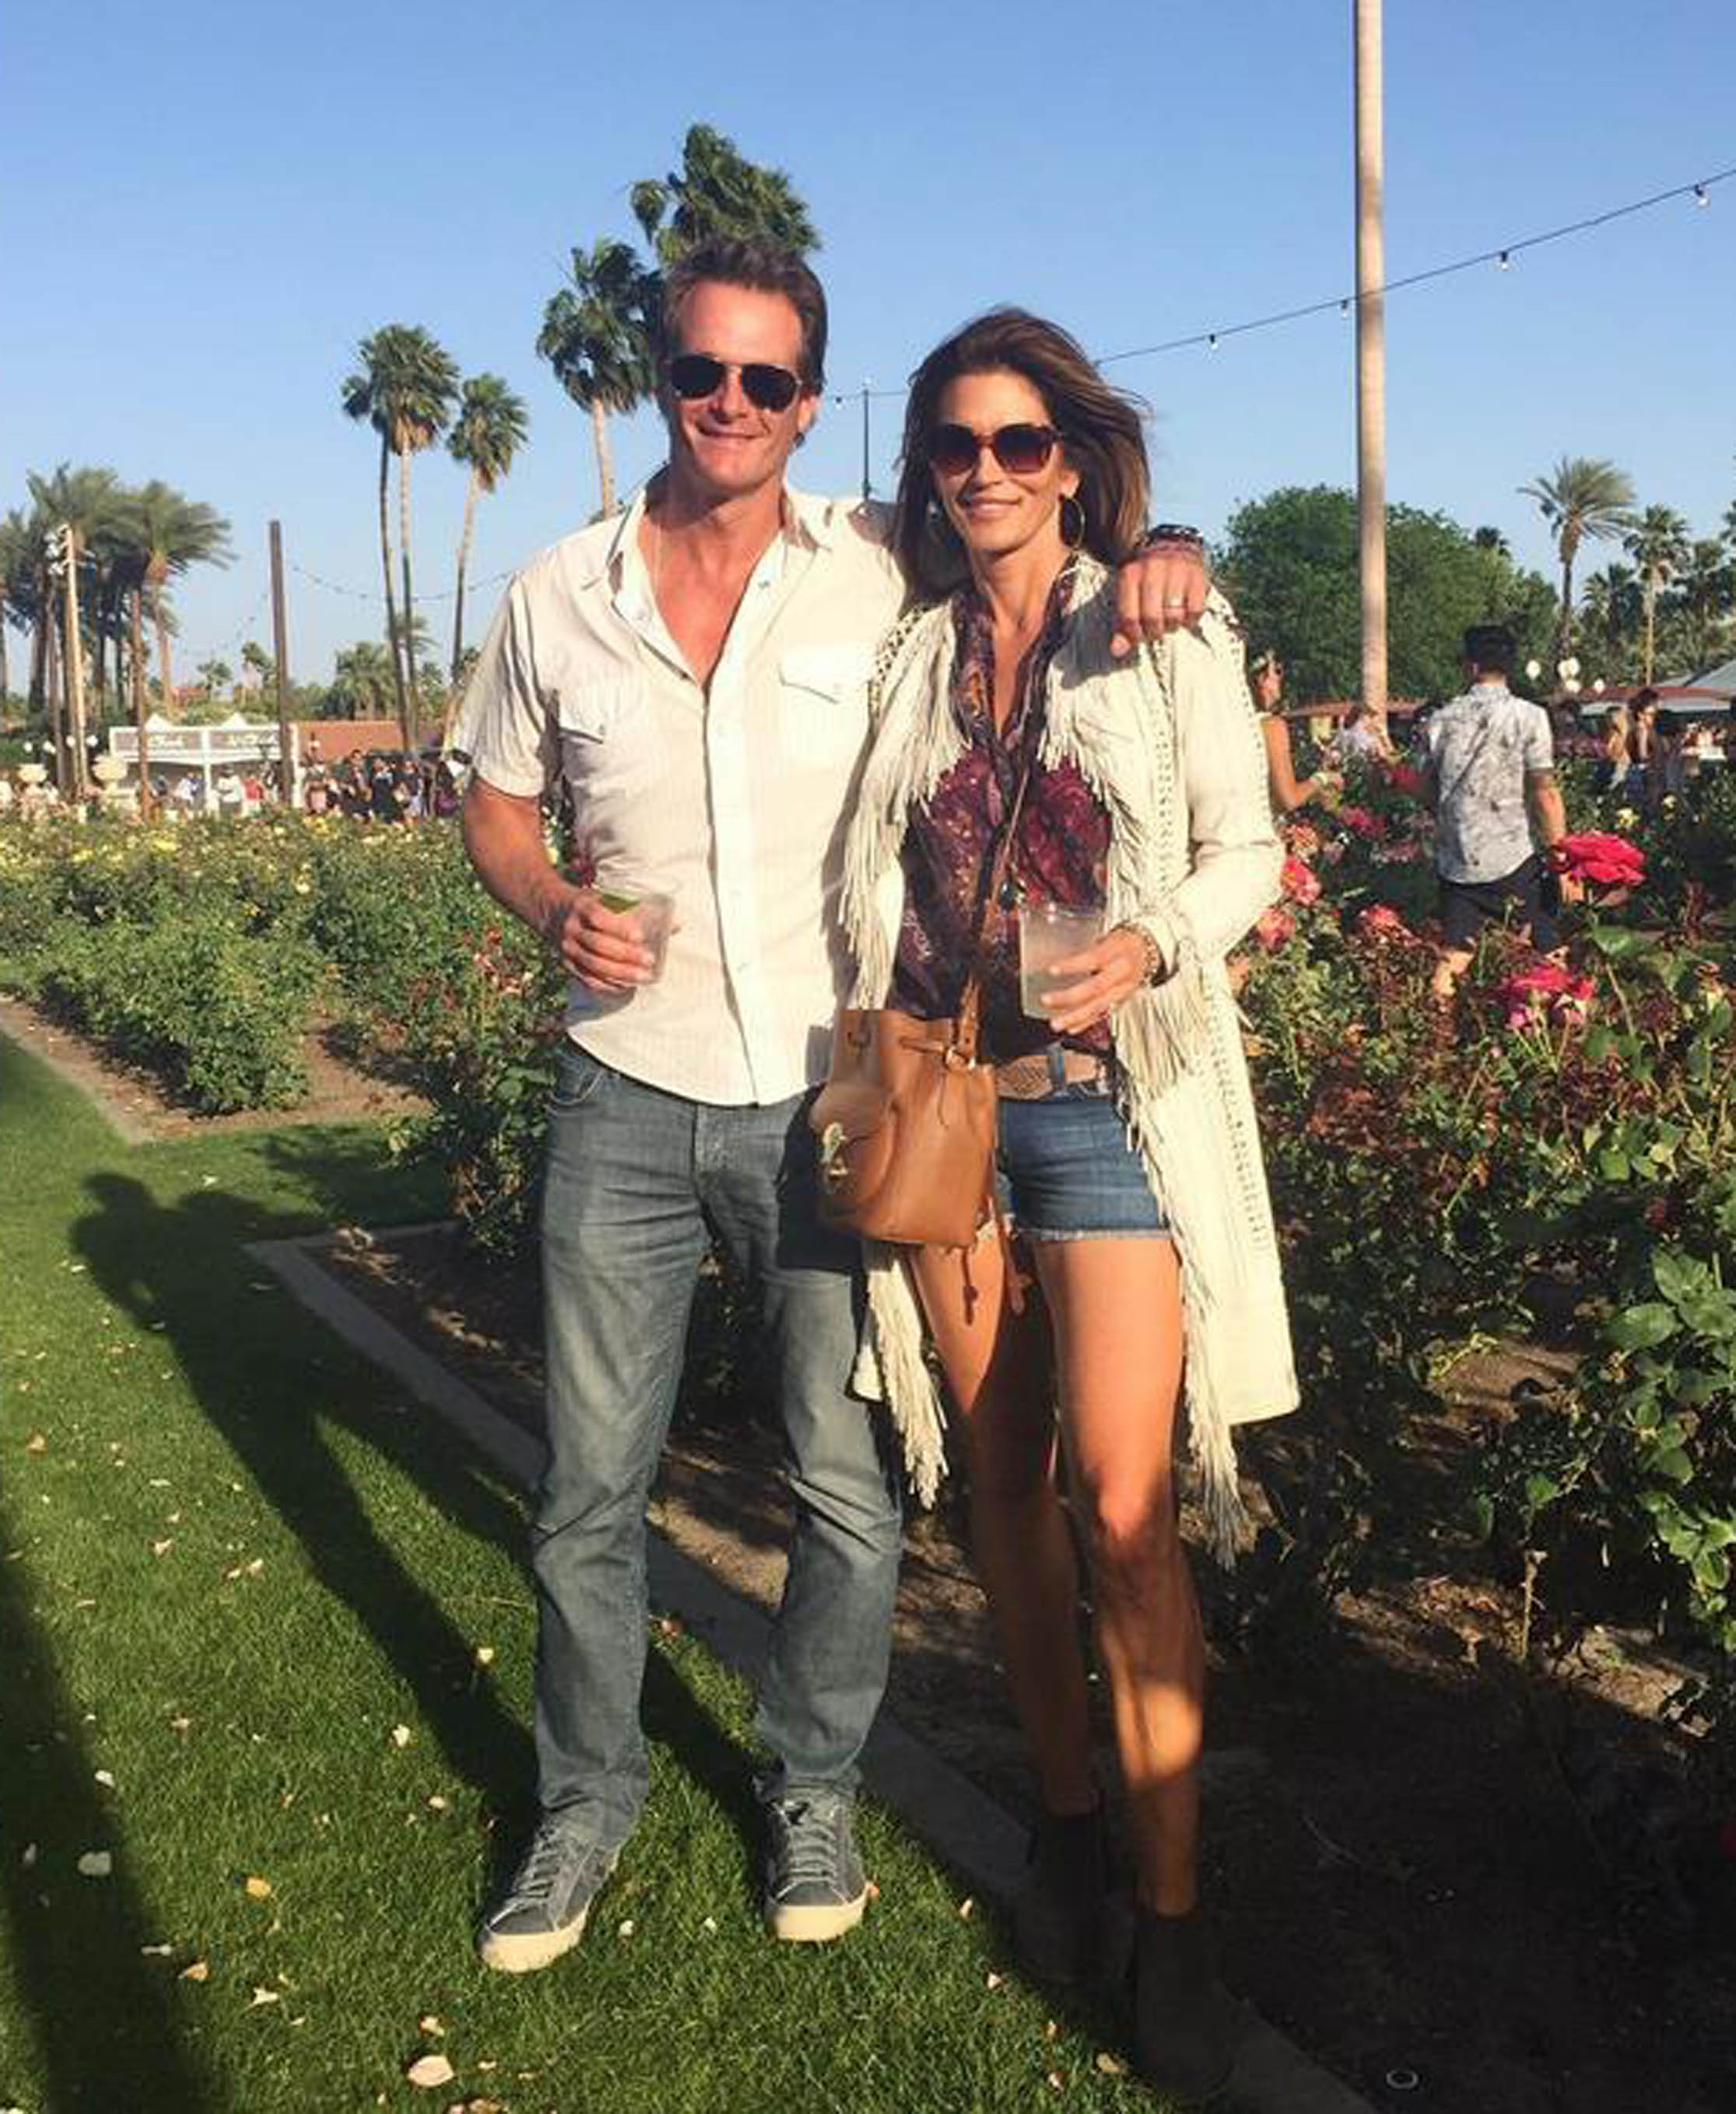 17-4-2016 Cindy Crawford with husband at Coachella Pictured: Cindy Crawford Rande Gerber PLANET PHOTOS www.planetphotos.co.uk info@planetphotos.co.uk +44 (0)20 8883 1438